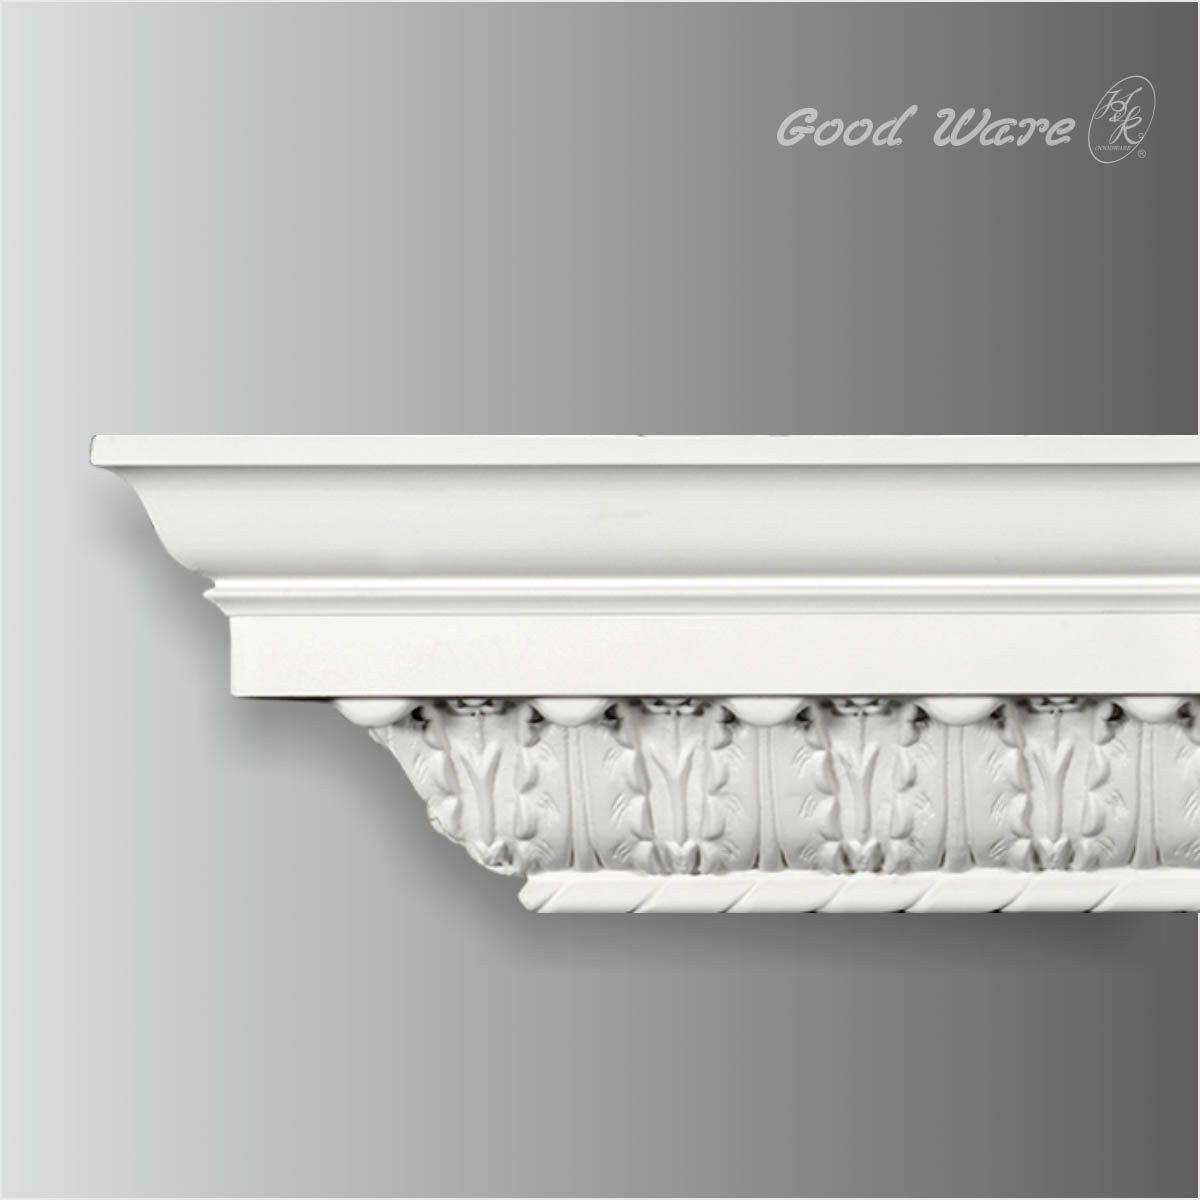 Acanthus carved crown molding for sale